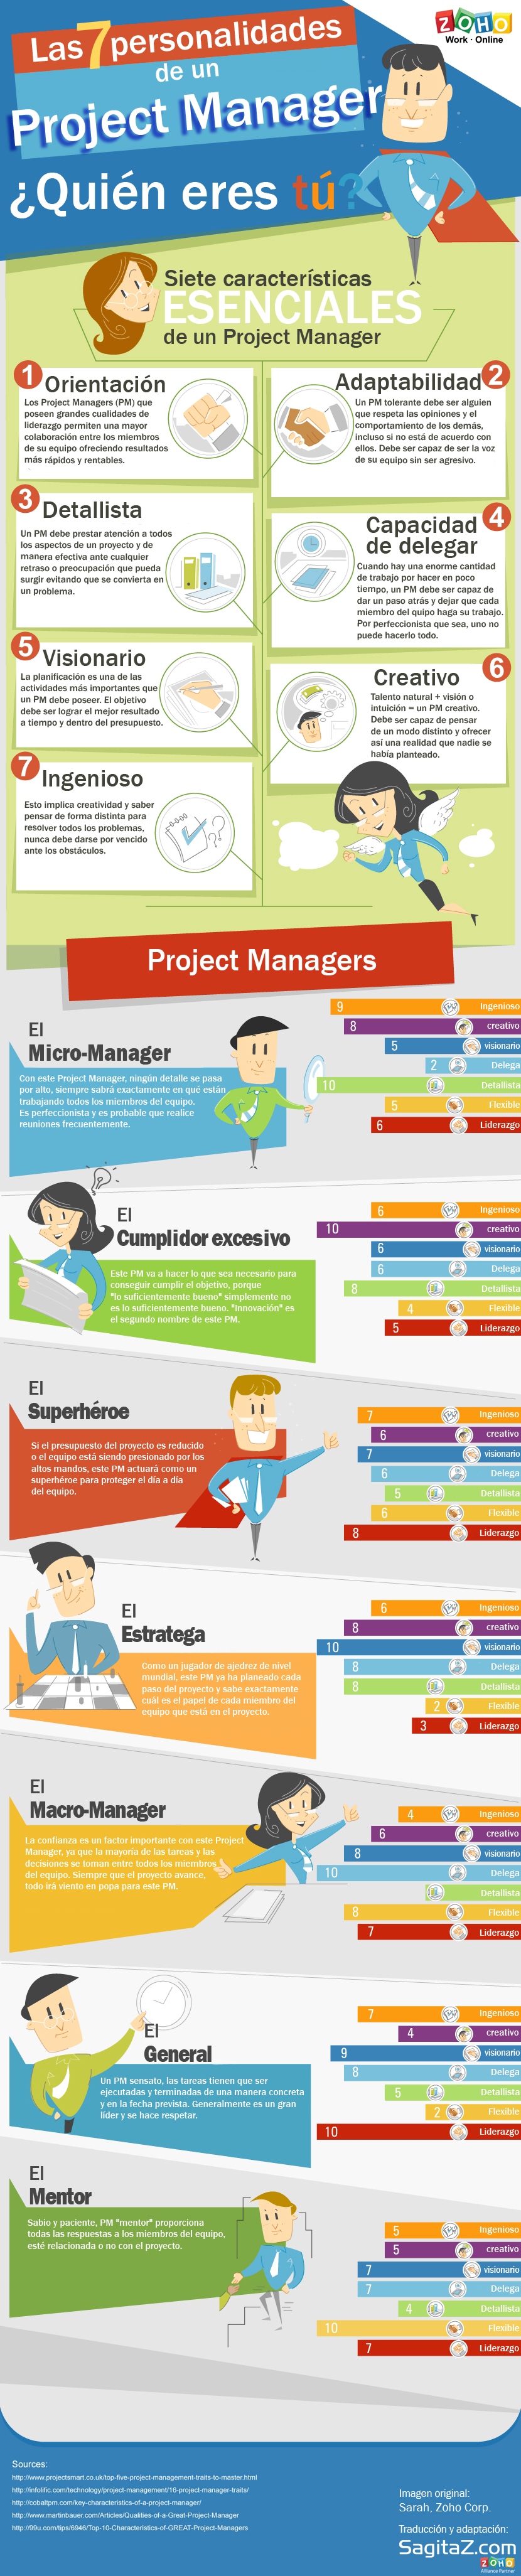 project-manager-zoho-projects-sagitaz-partner-infografia-infographic